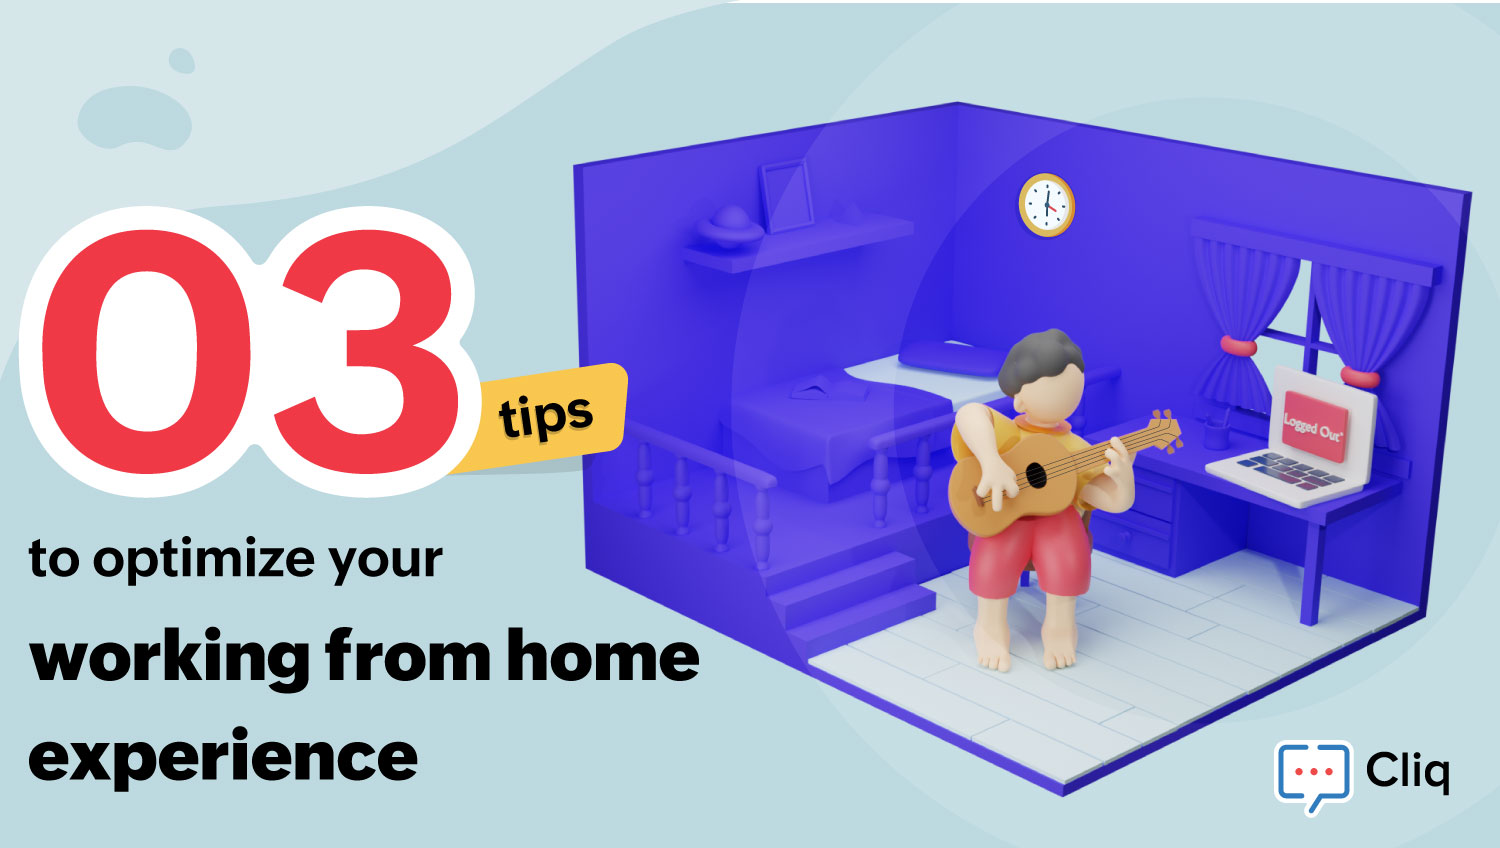 3 tips to optimize your working from home experience